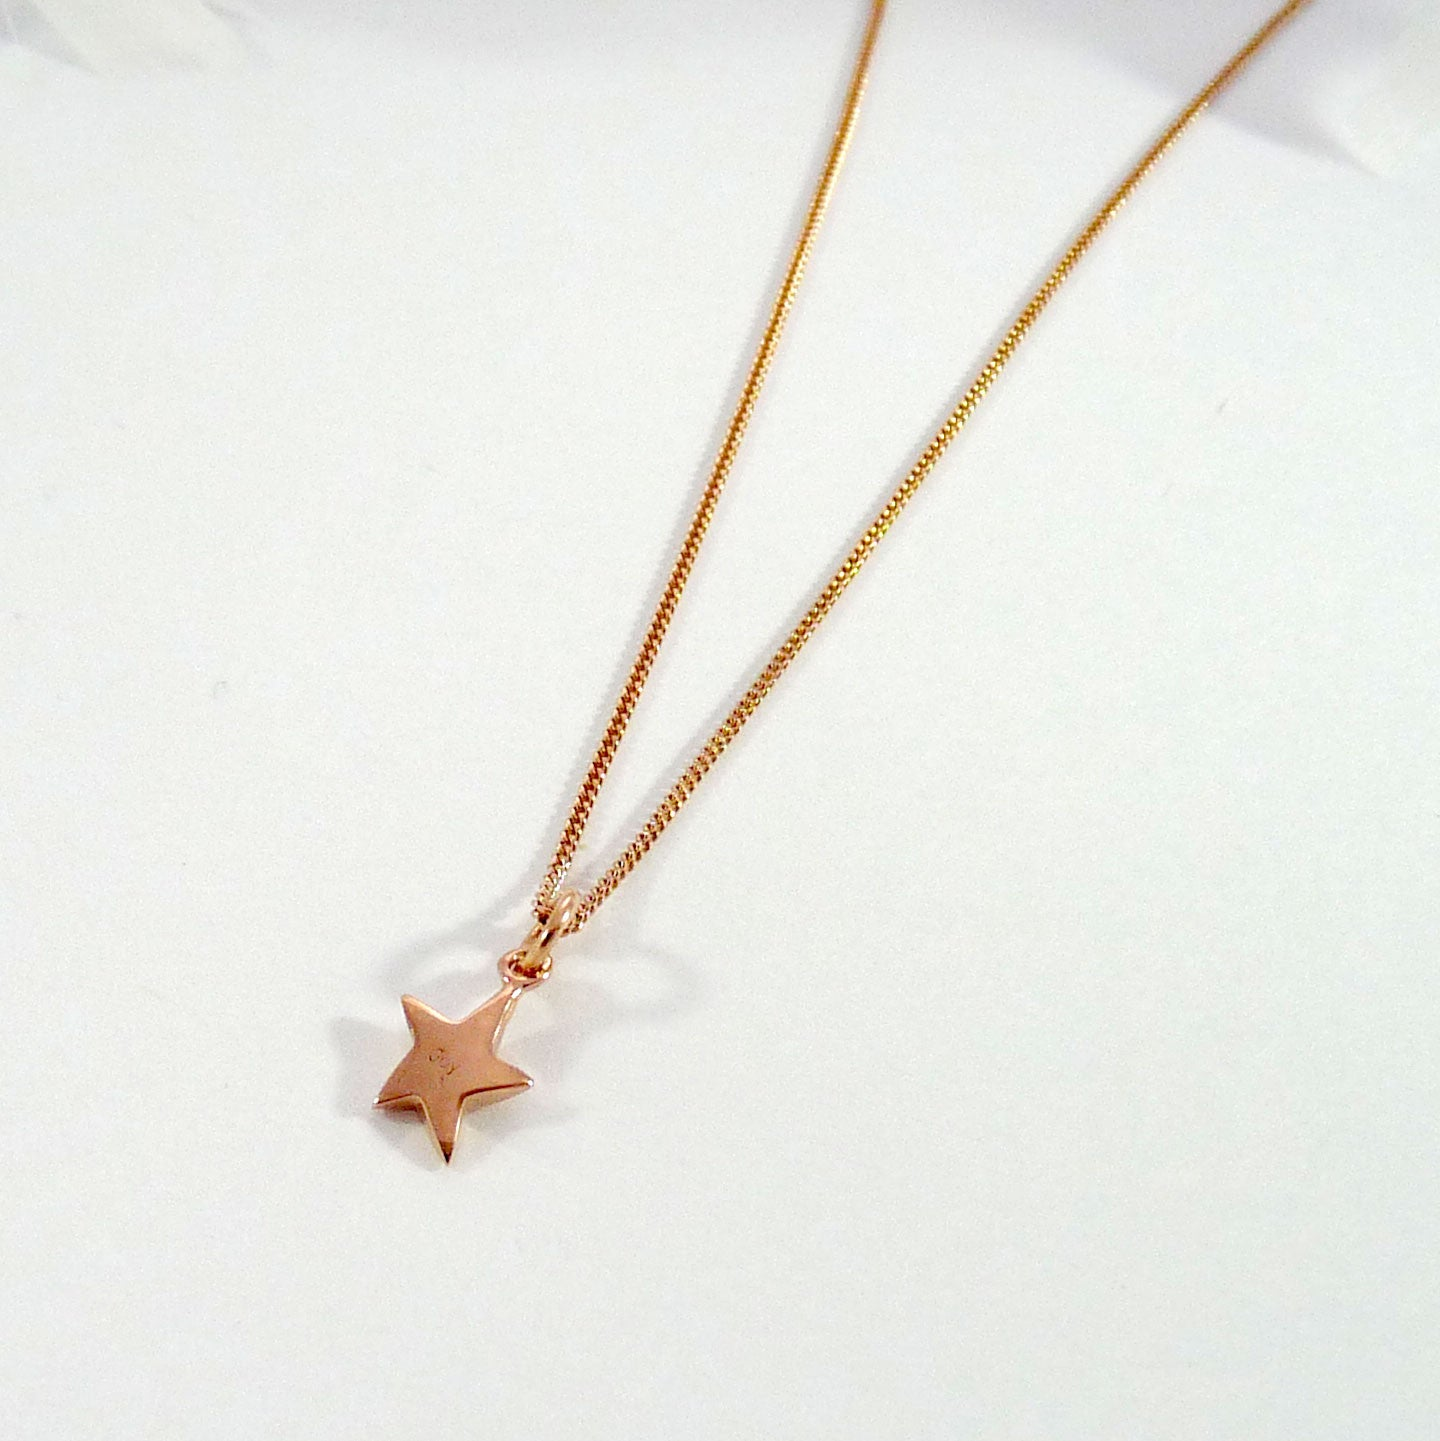 gold tiny bridesmaid necklace pendant filled star swarovski crystal pin